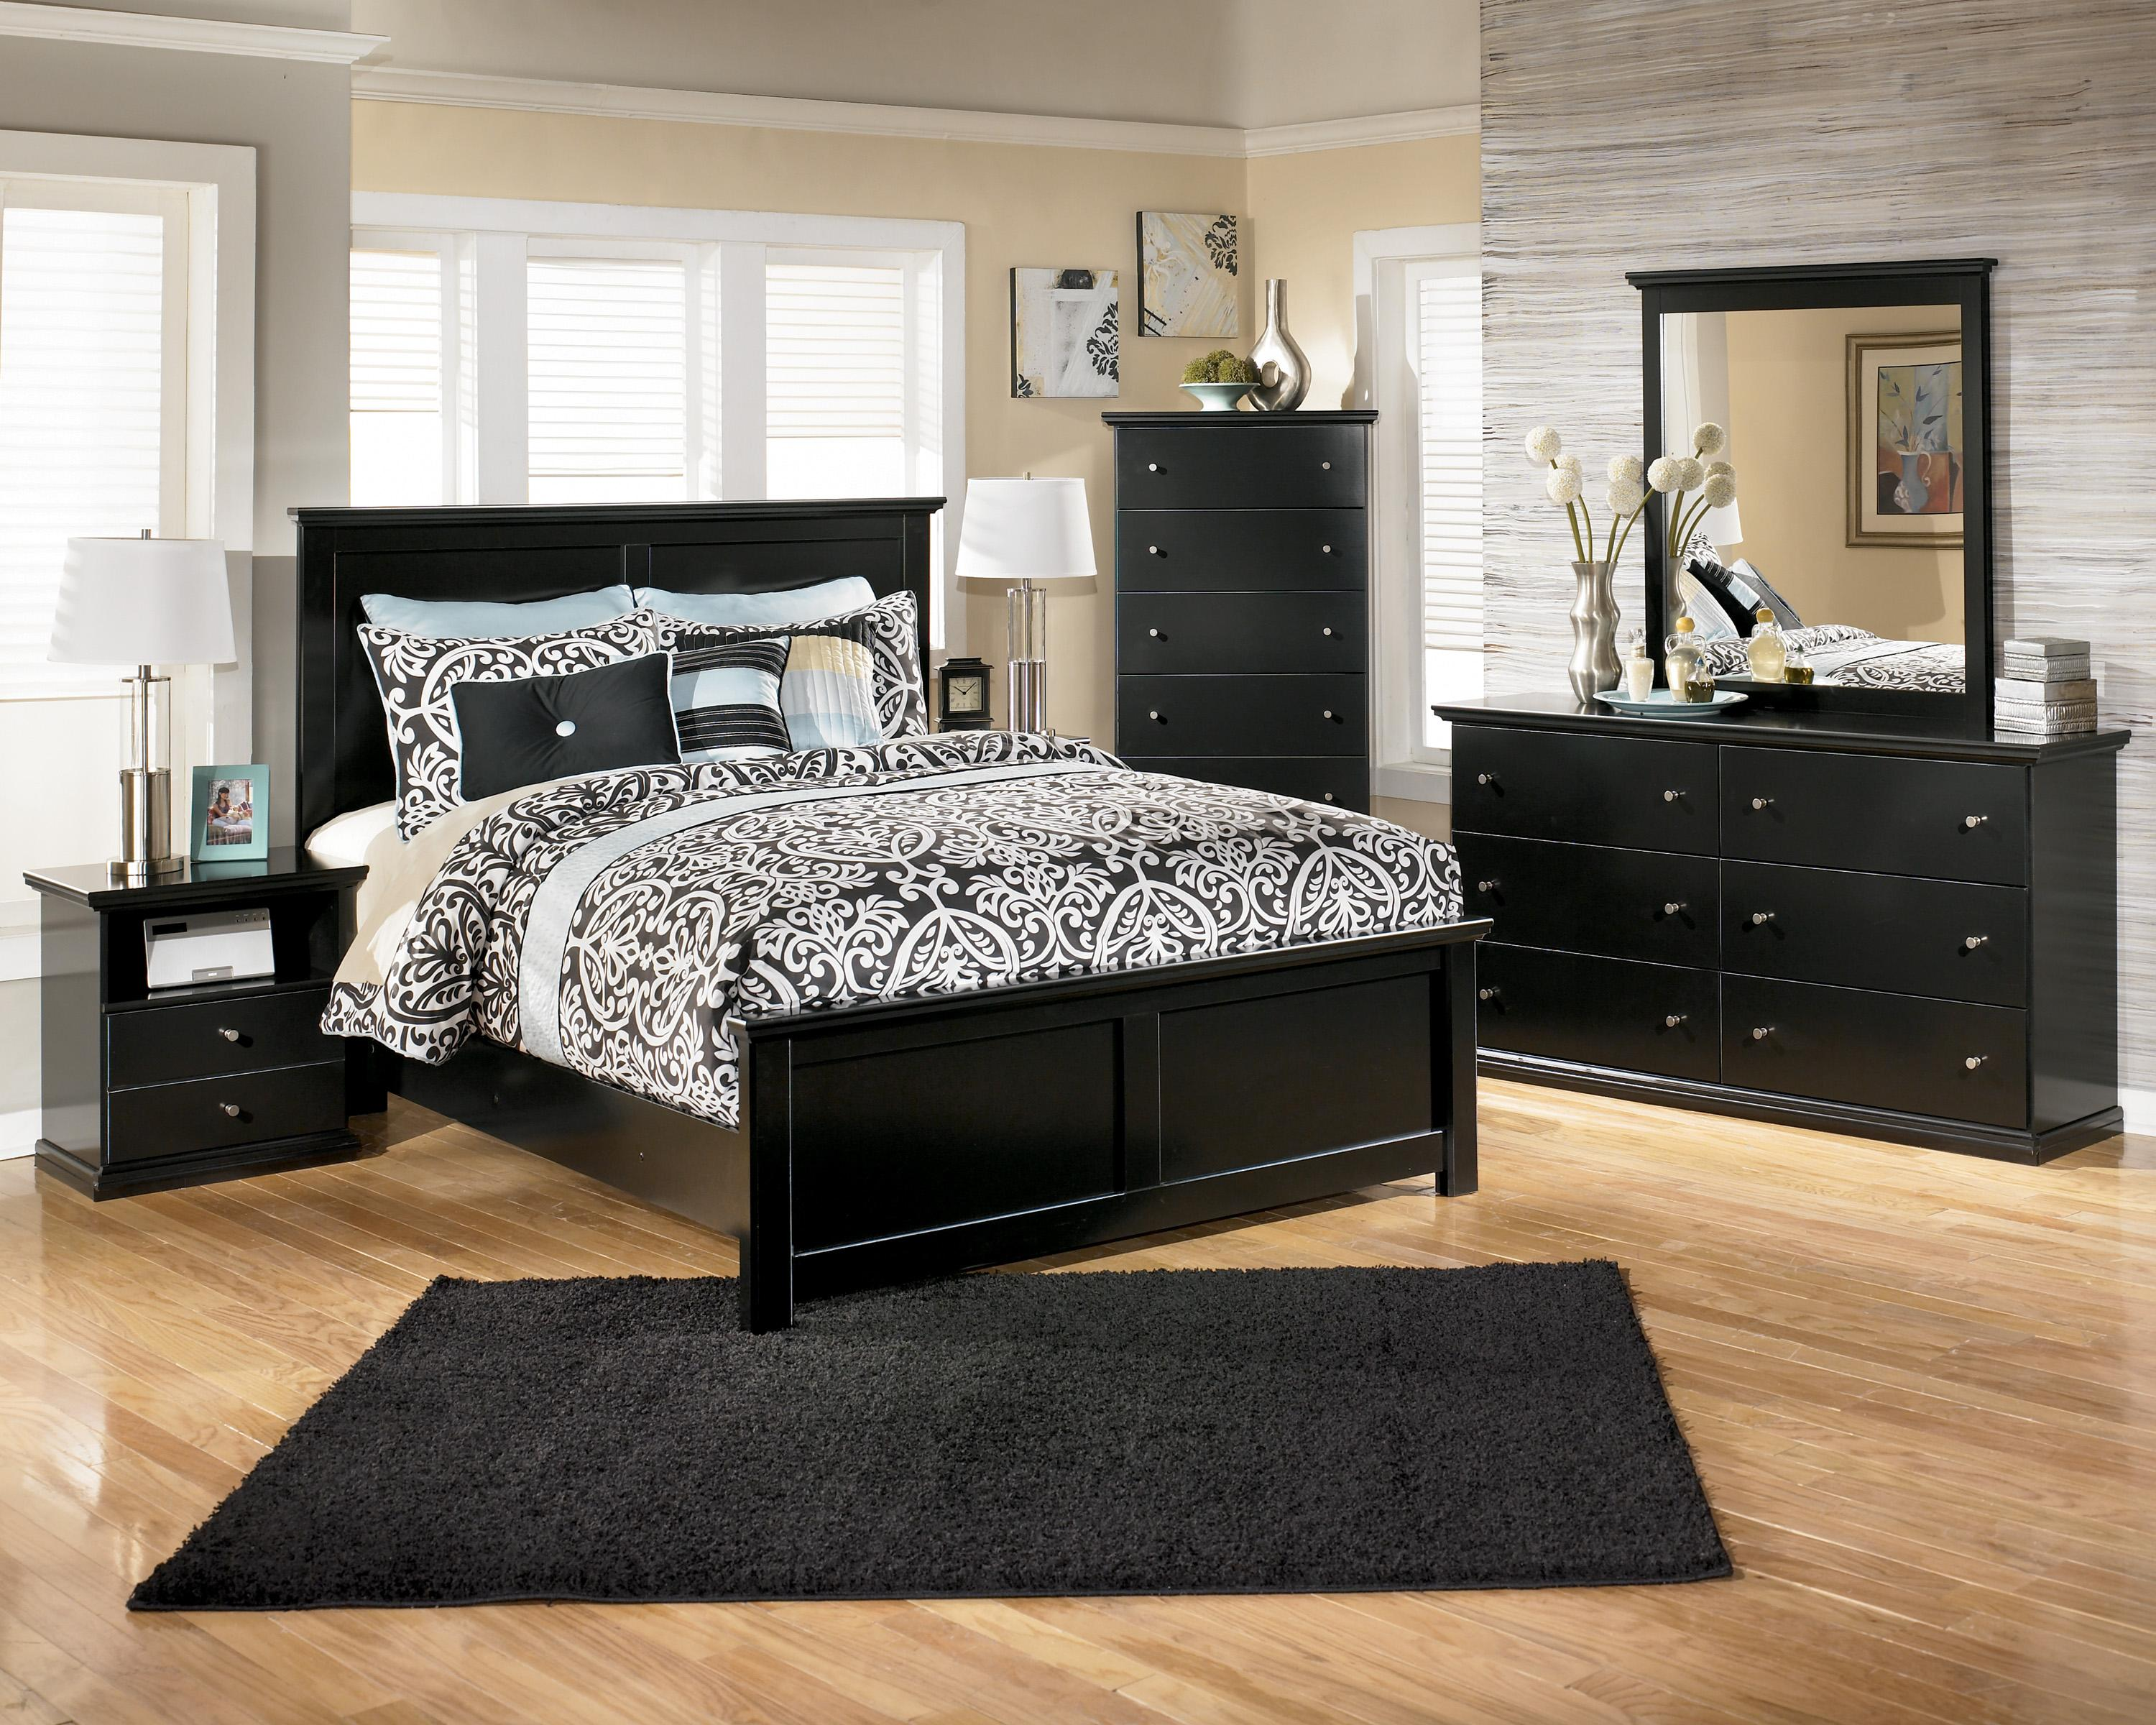 Maribel 3 pc bedroom dresser mirror amp queen full panel headboard - Maribel By Signature Design By Ashley